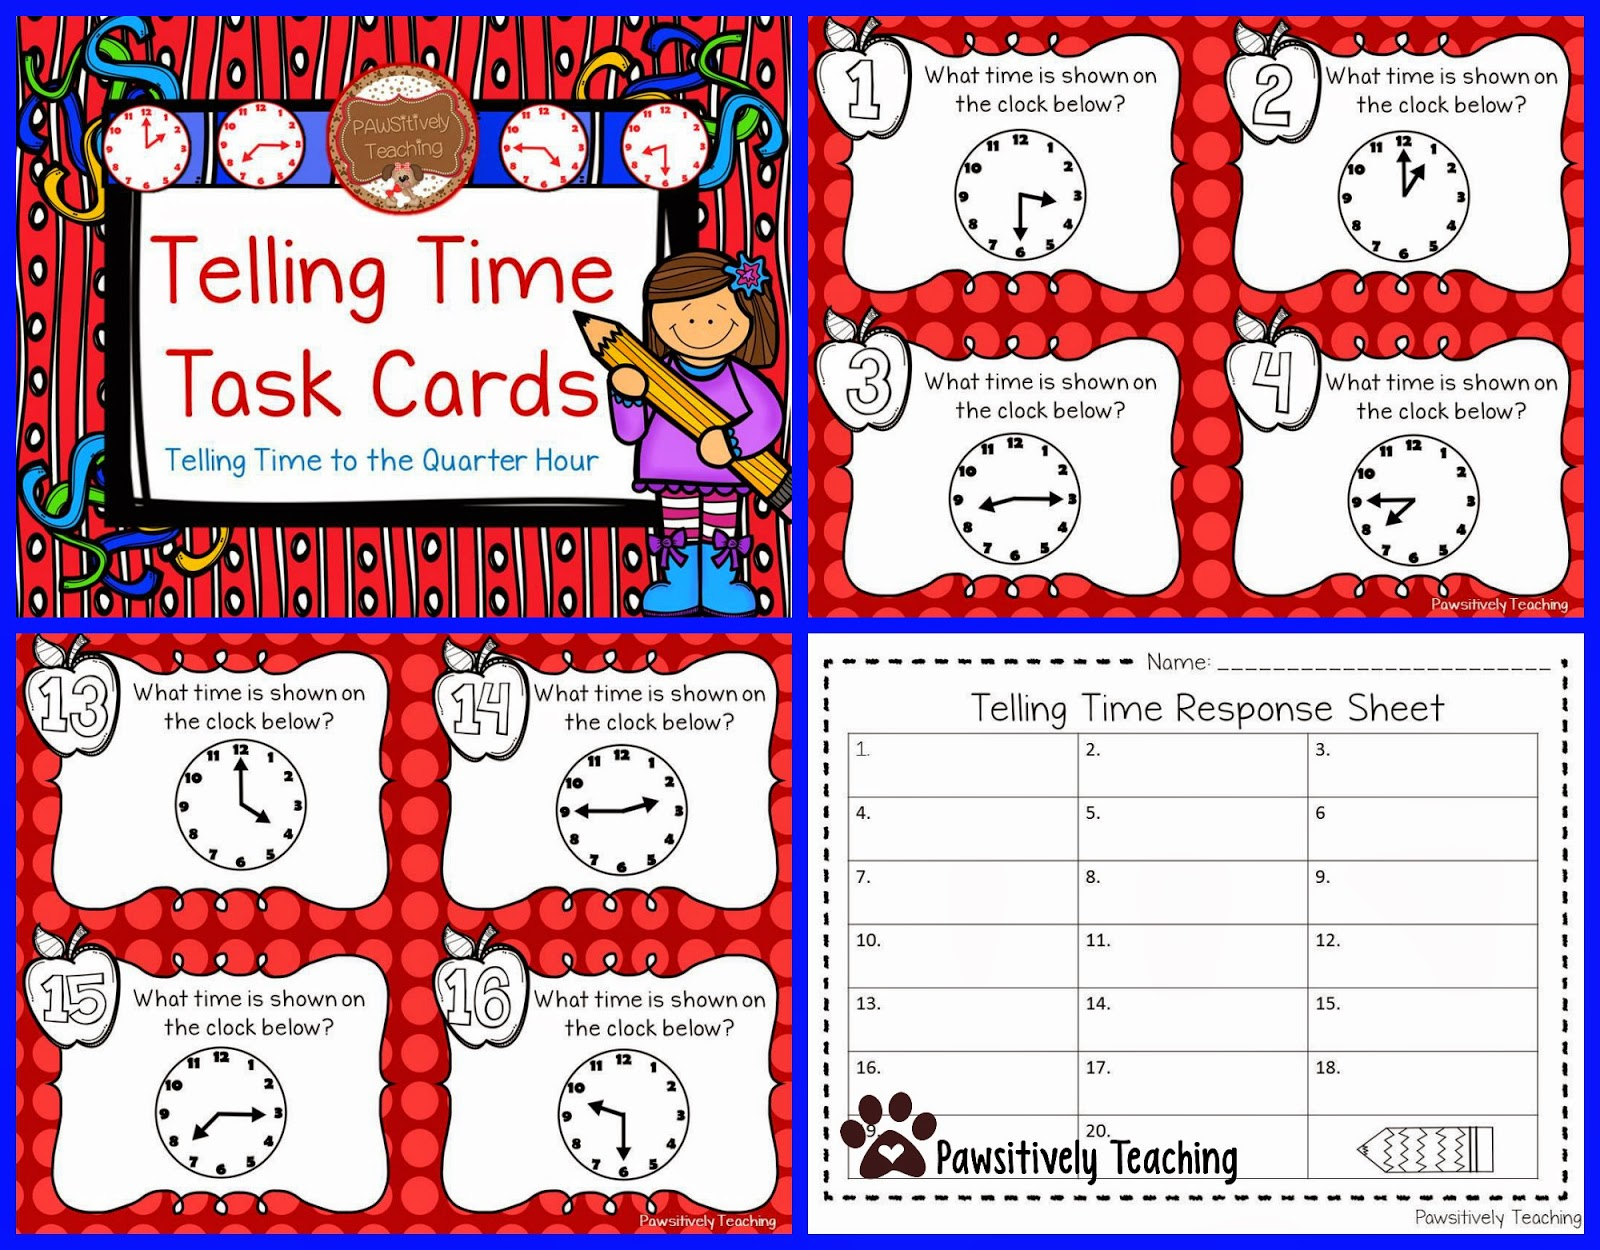 Pawsitively teaching telling time task card freebie